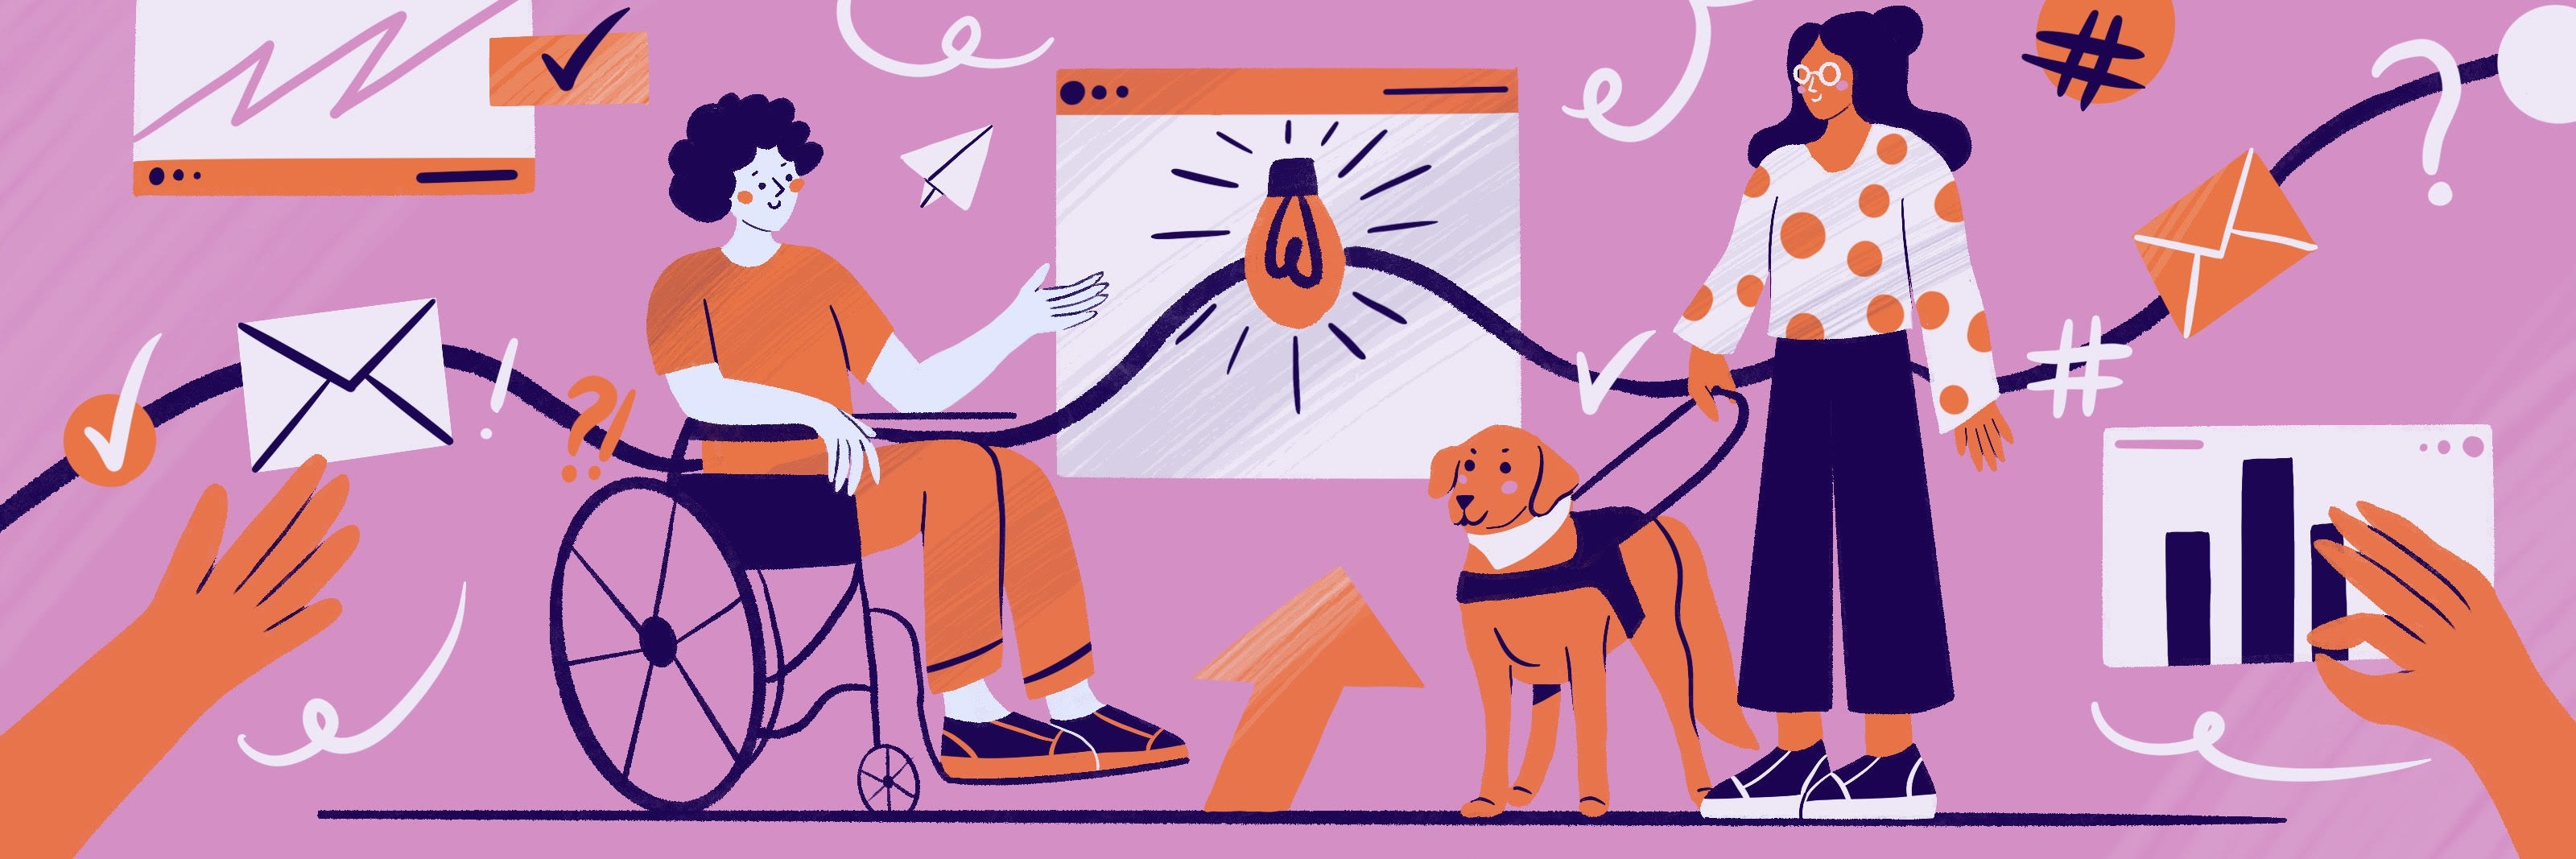 Accessible Design Systems: Look Good While Doing Good